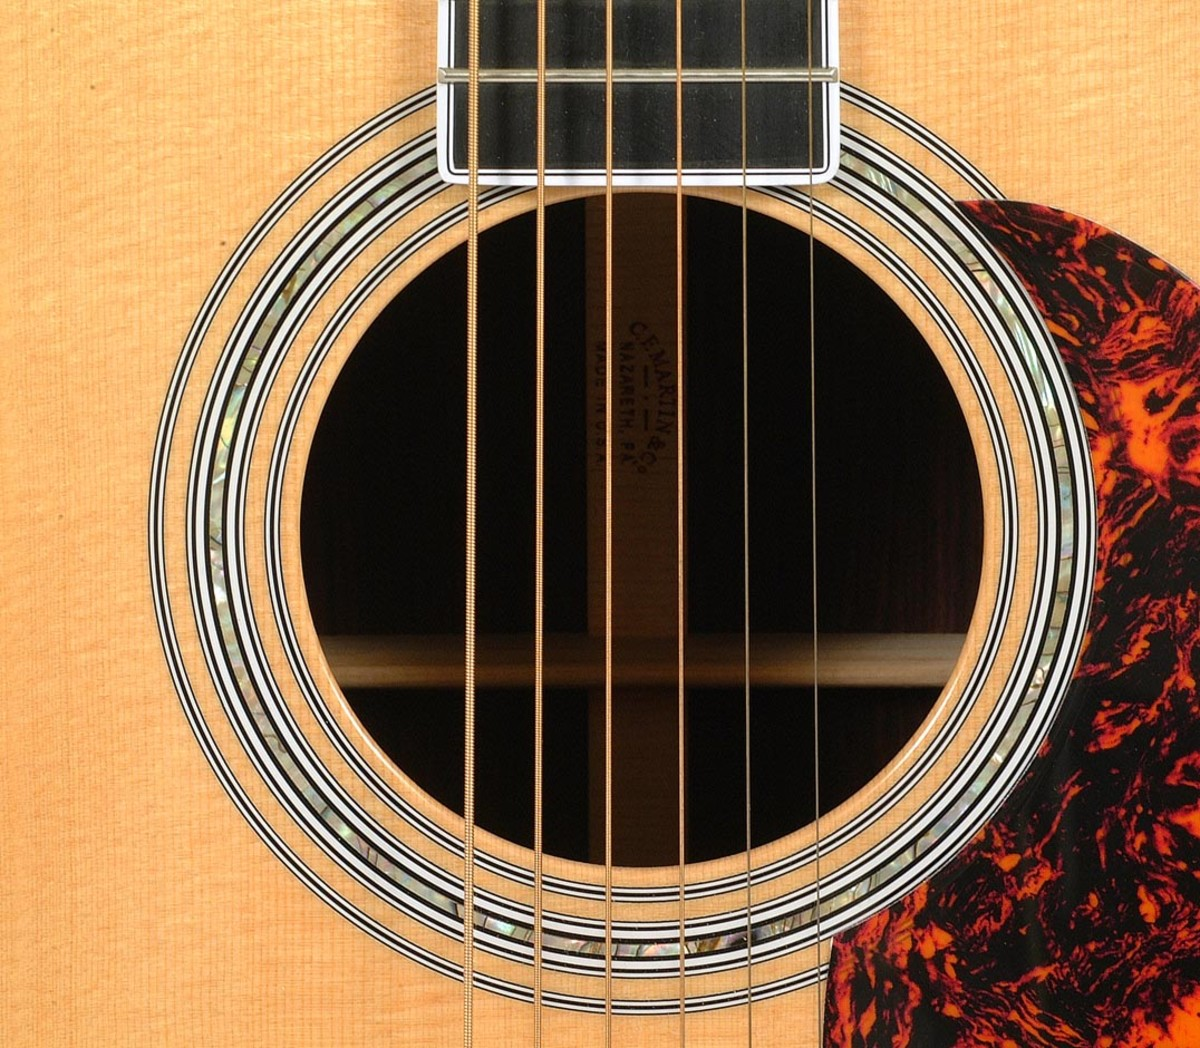 The soundhole is where the acoustics happen. It's best to play just over the soundhole on the guitar, for maximum sound.